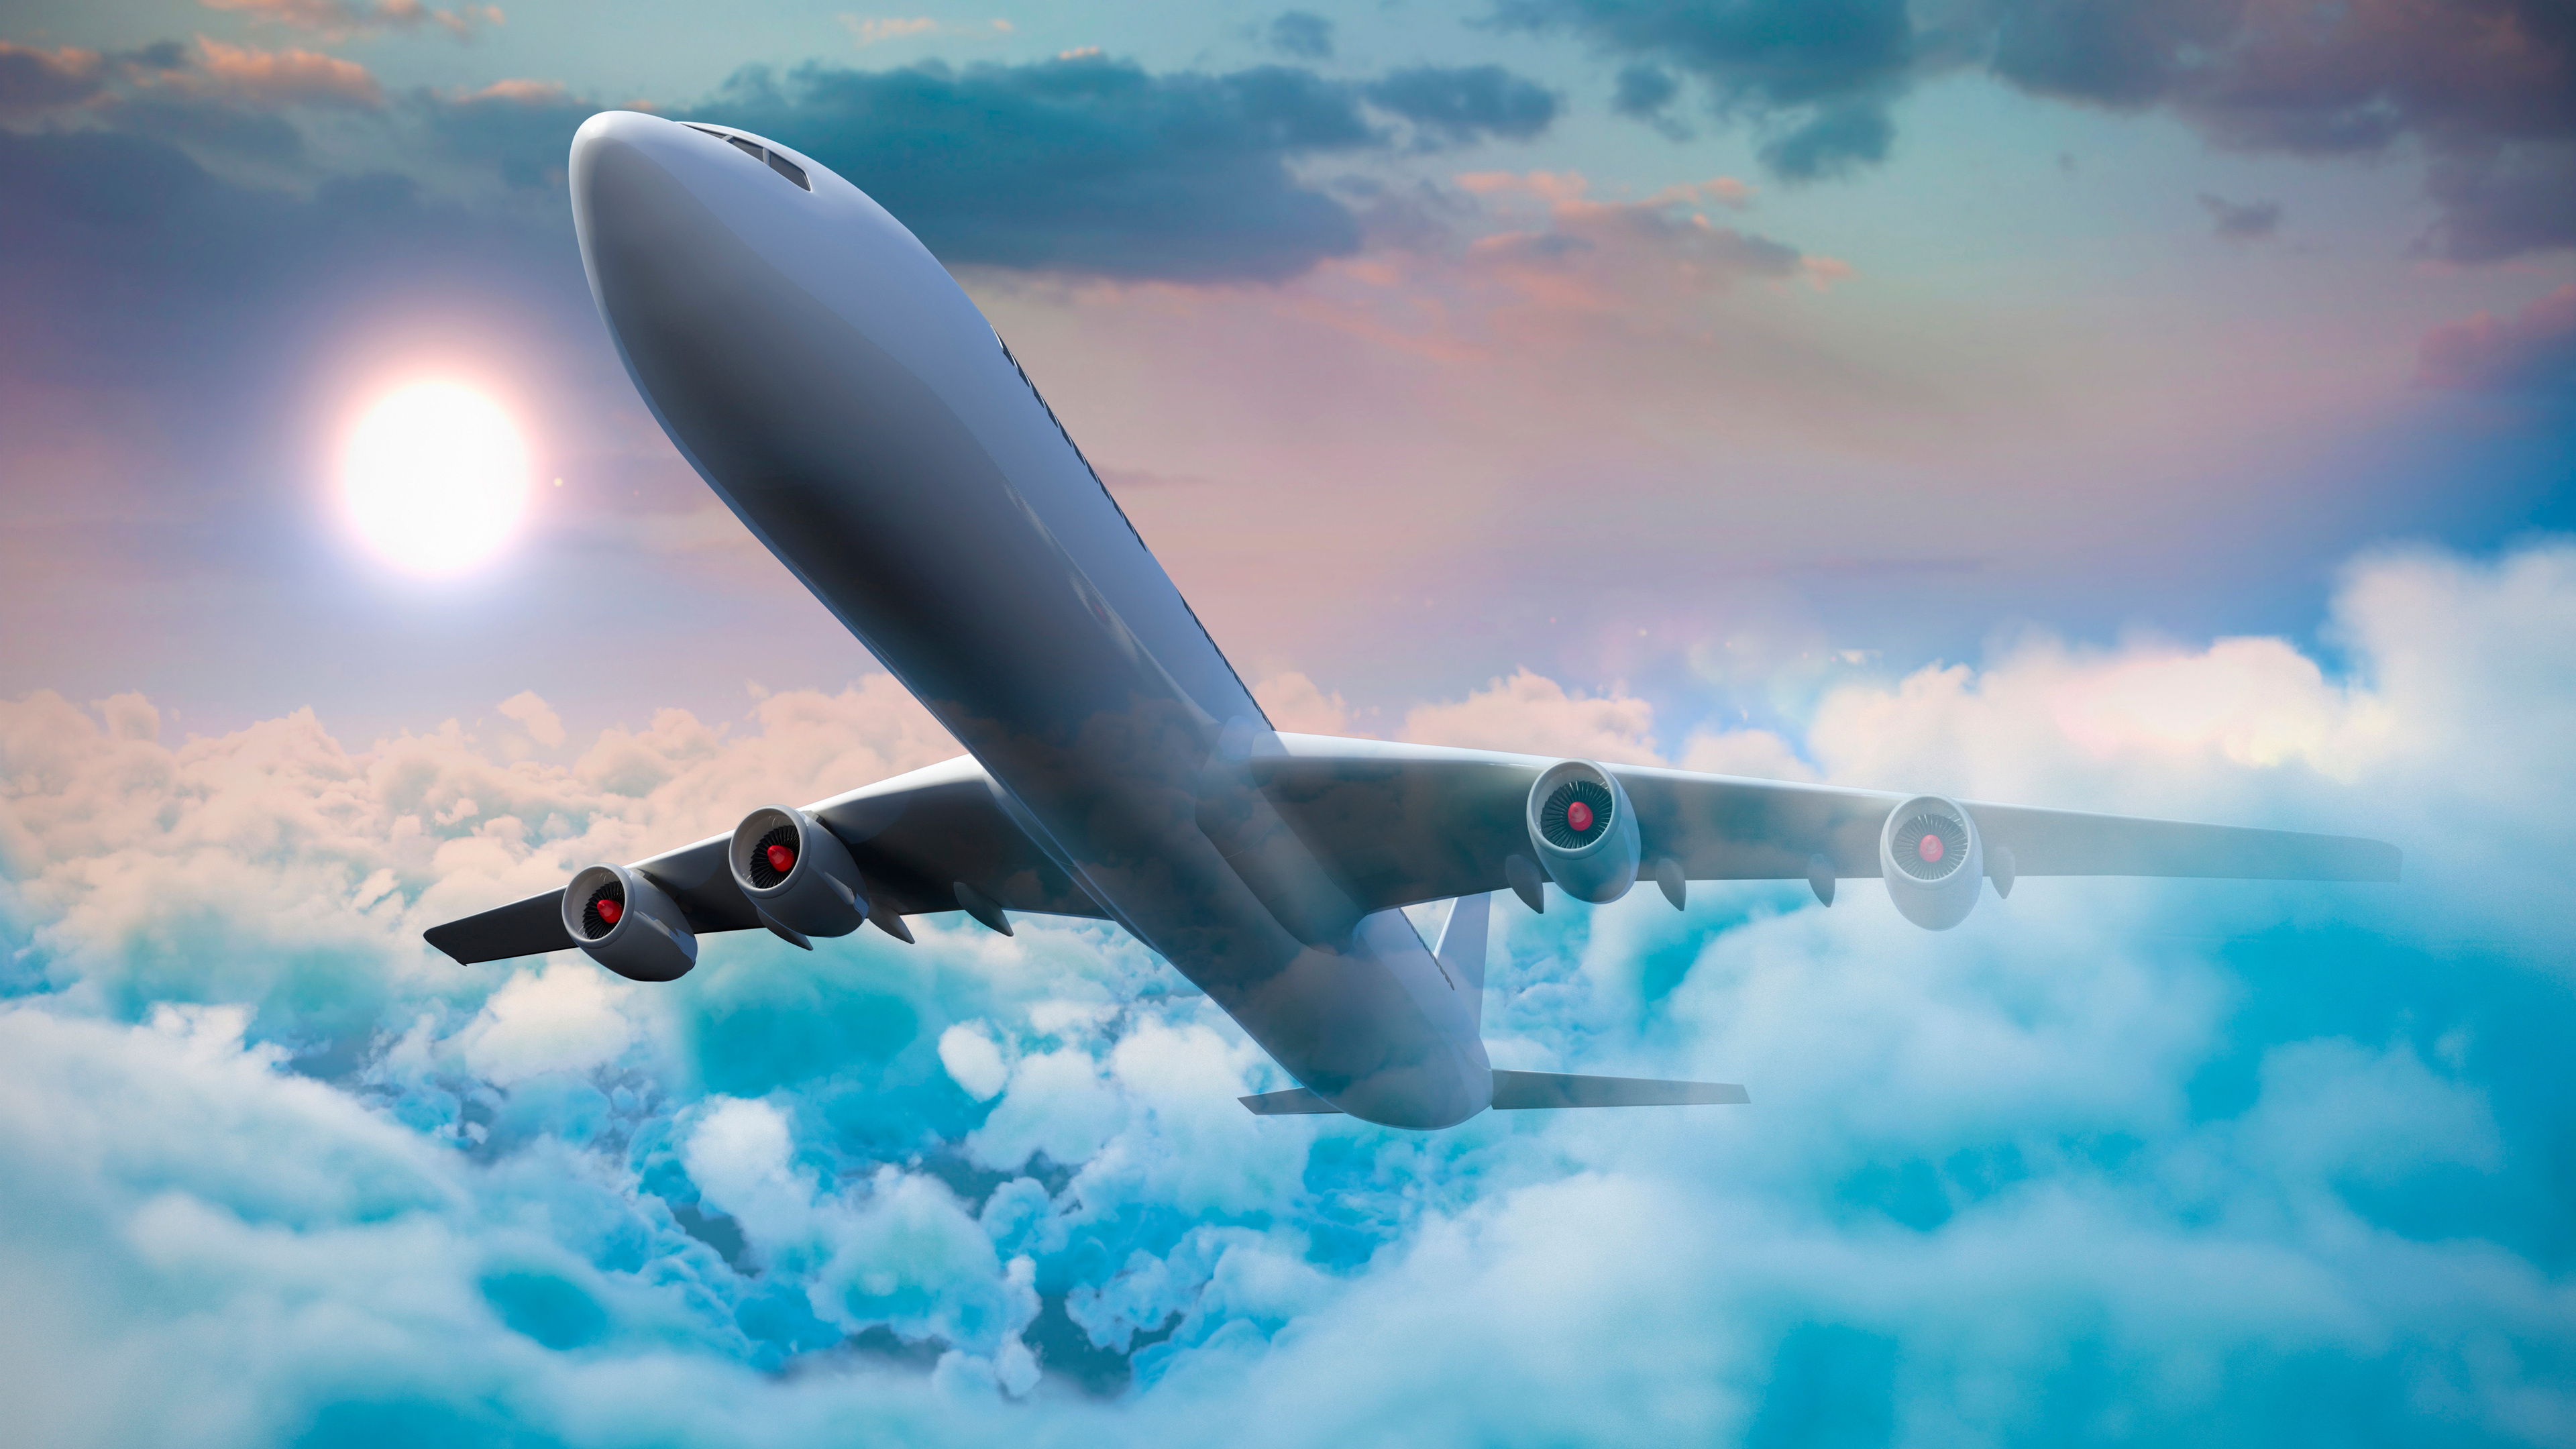 3840x2160 Passenger Airplanes Clouds 5k 4k Hd 4k Wallpapers Images Backgrounds Photos And Pictures